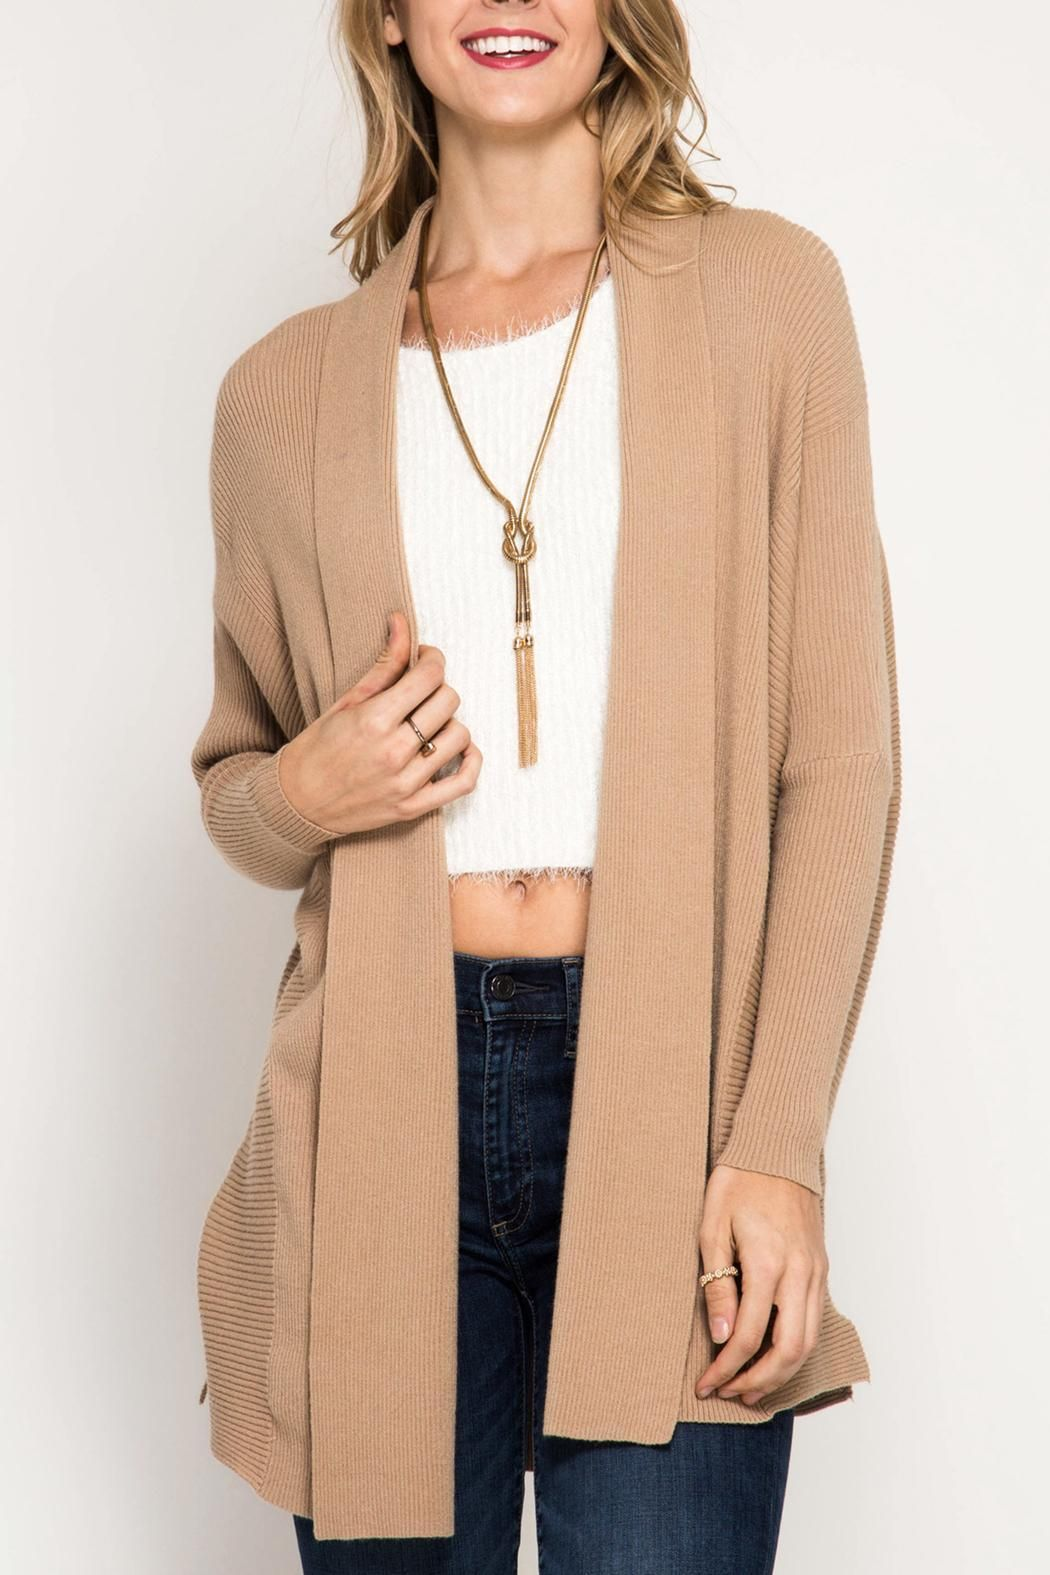 She Sky Ribbed Sweater Cardigan Boutique Highlights Pinterest